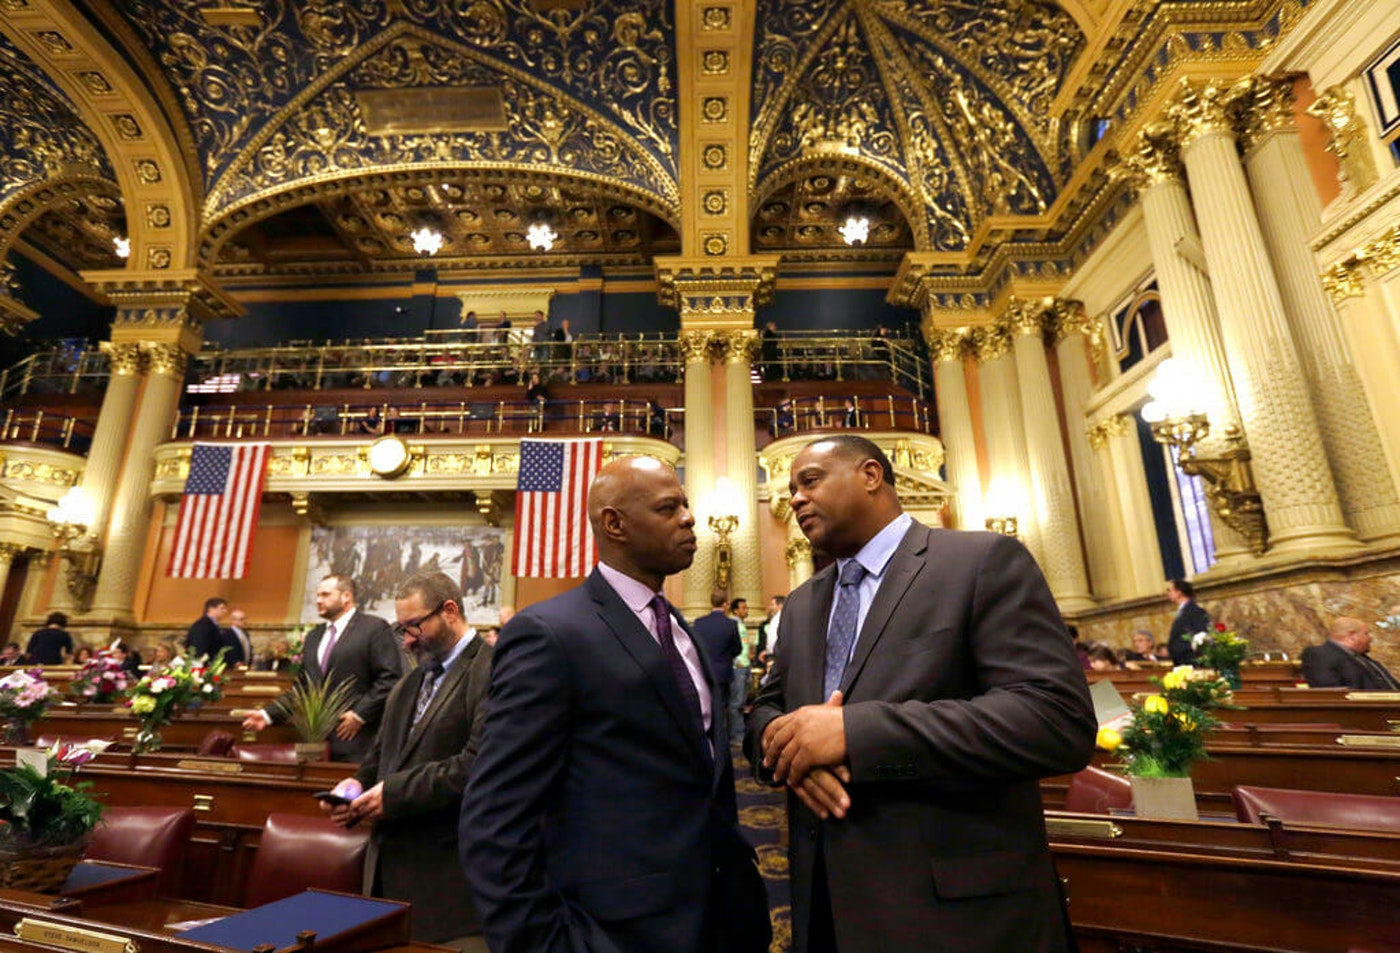 Pennsylvania state House Rep. Ed Gainey, D-Pittsburgh, right, talks with Rep. Stephen Kinsey, D-Philadelphia, Tuesday Jan. 1, 2019, at the statehouse in Harrisburg, Pa. Pennsylvania state lawmakers were sworn in on New Year's Day. The House welcomed 42 new members and seven new senators took the oath of office on Tuesday after winning election in November. (AP Photo/Jacqueline Larma)